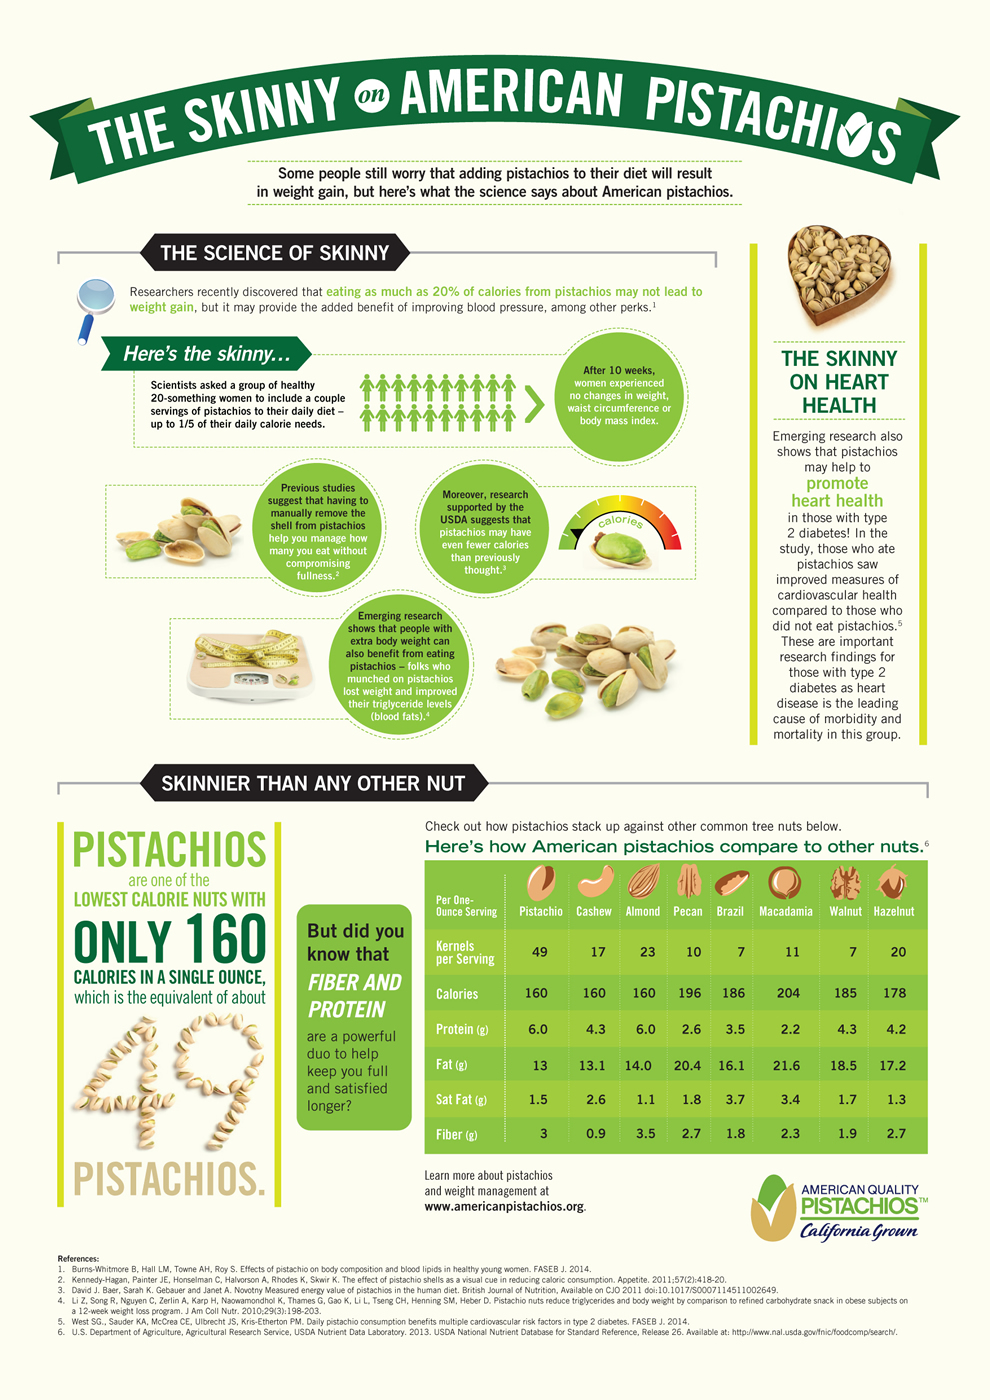 The Skinny on American Pistachios Infographic